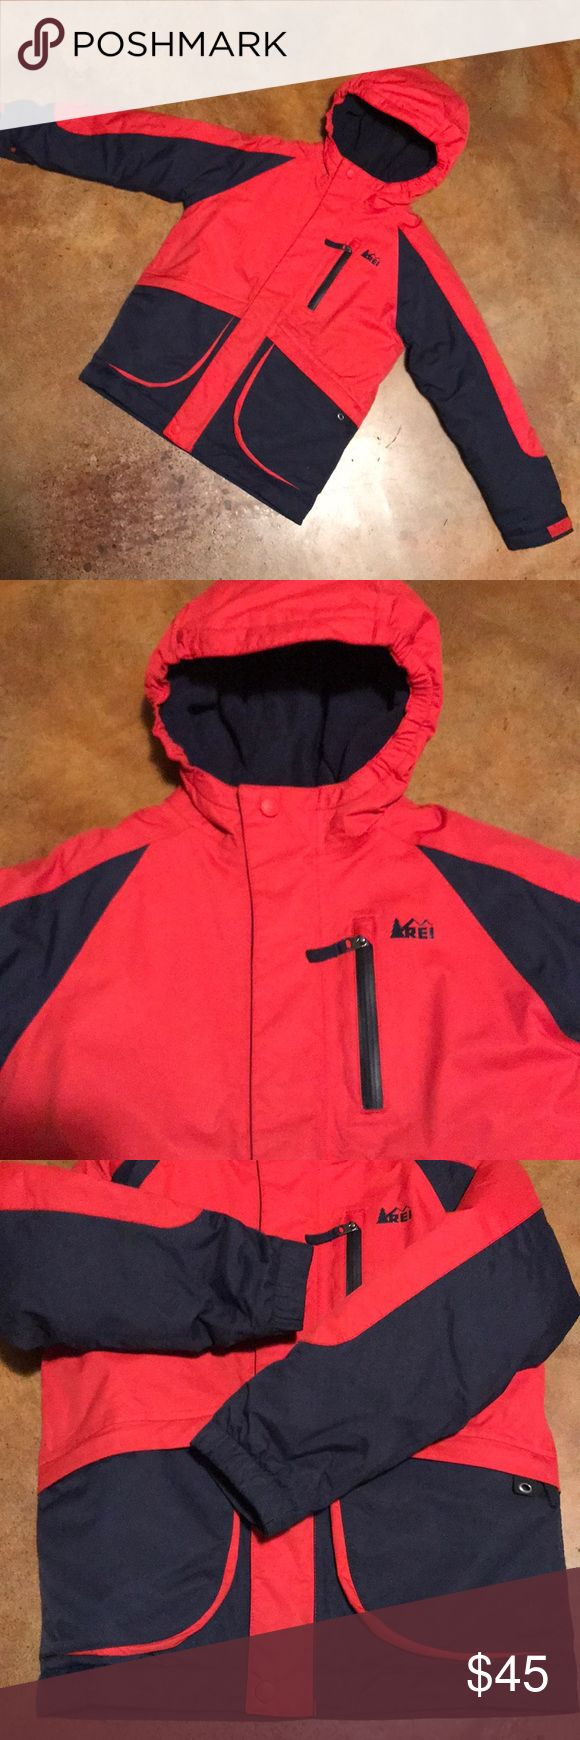 REI Ski Jacket Red with navy blue hooded, fleece lined winter waterproof jacket. Excellent condition. Size 6/7  ❄️Built for winter fun, the boys' REI Timber Mountain Jacket covers kids with full-blown windproof, waterproof, breathable protection. Size 6/7 REI Jackets & Coats